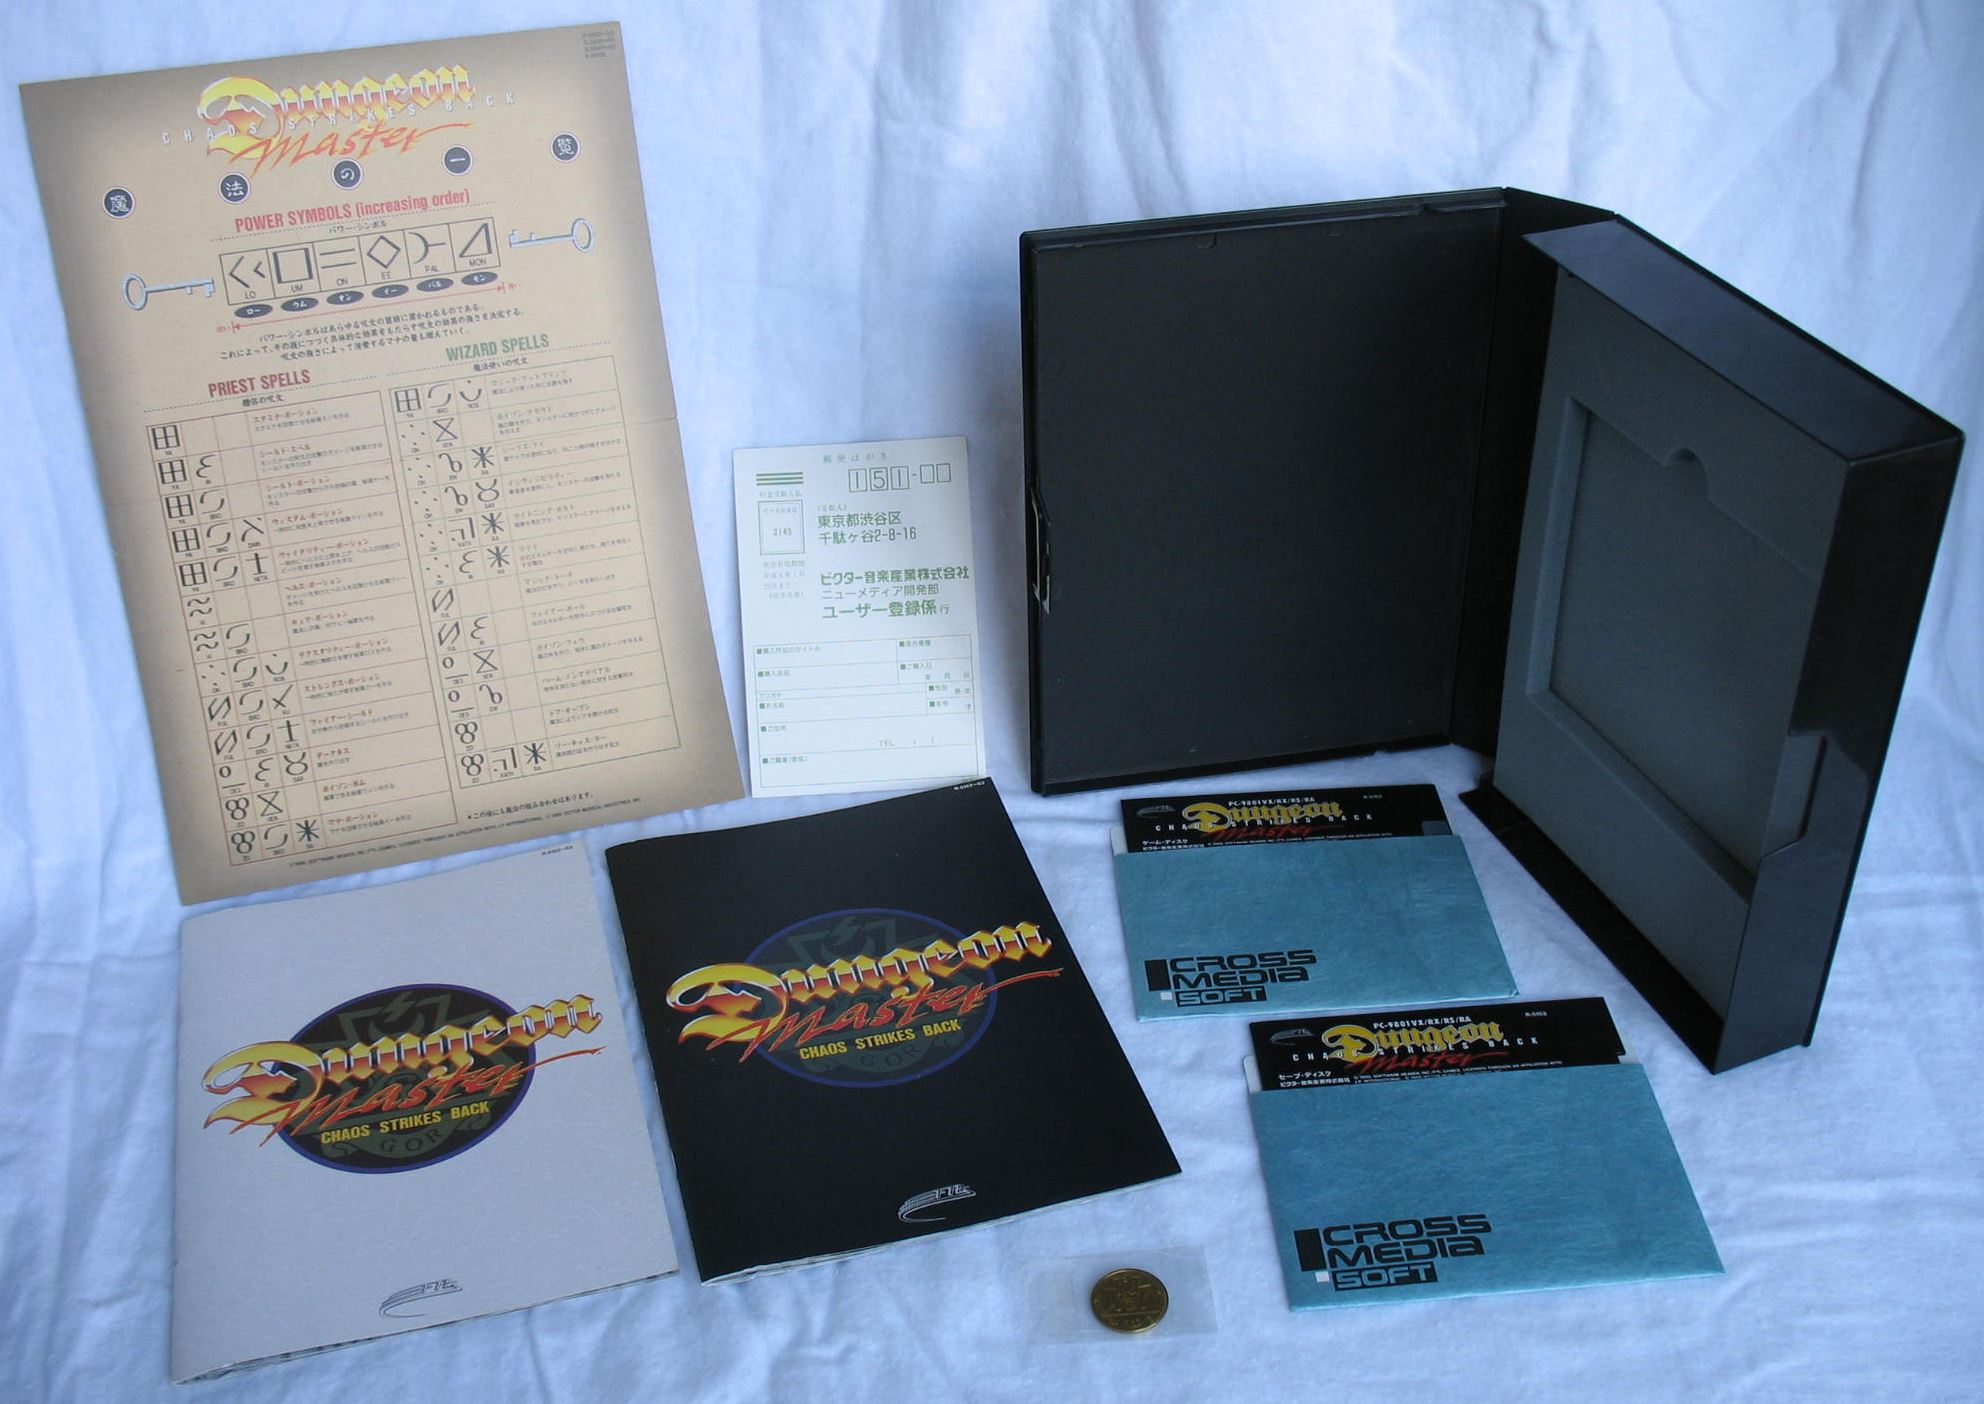 Game - Chaos Strikes Back - JP - PC-9801 - 5.25-inch - All - Overview - Photo